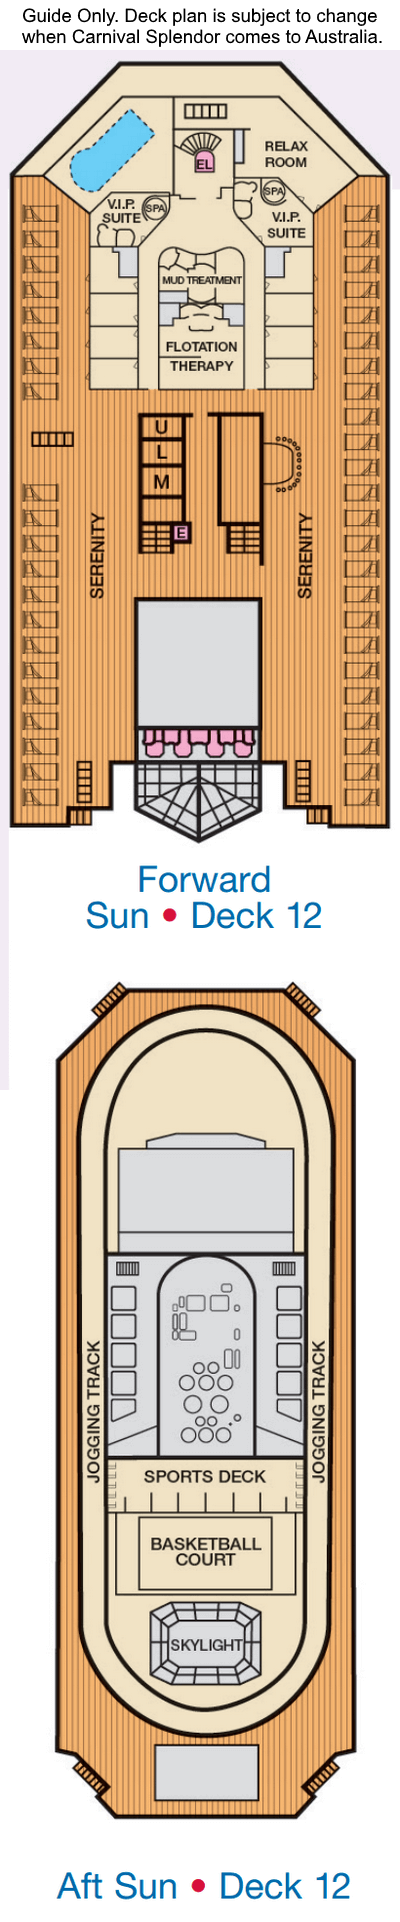 Carnival Splendor Deck 12 layout